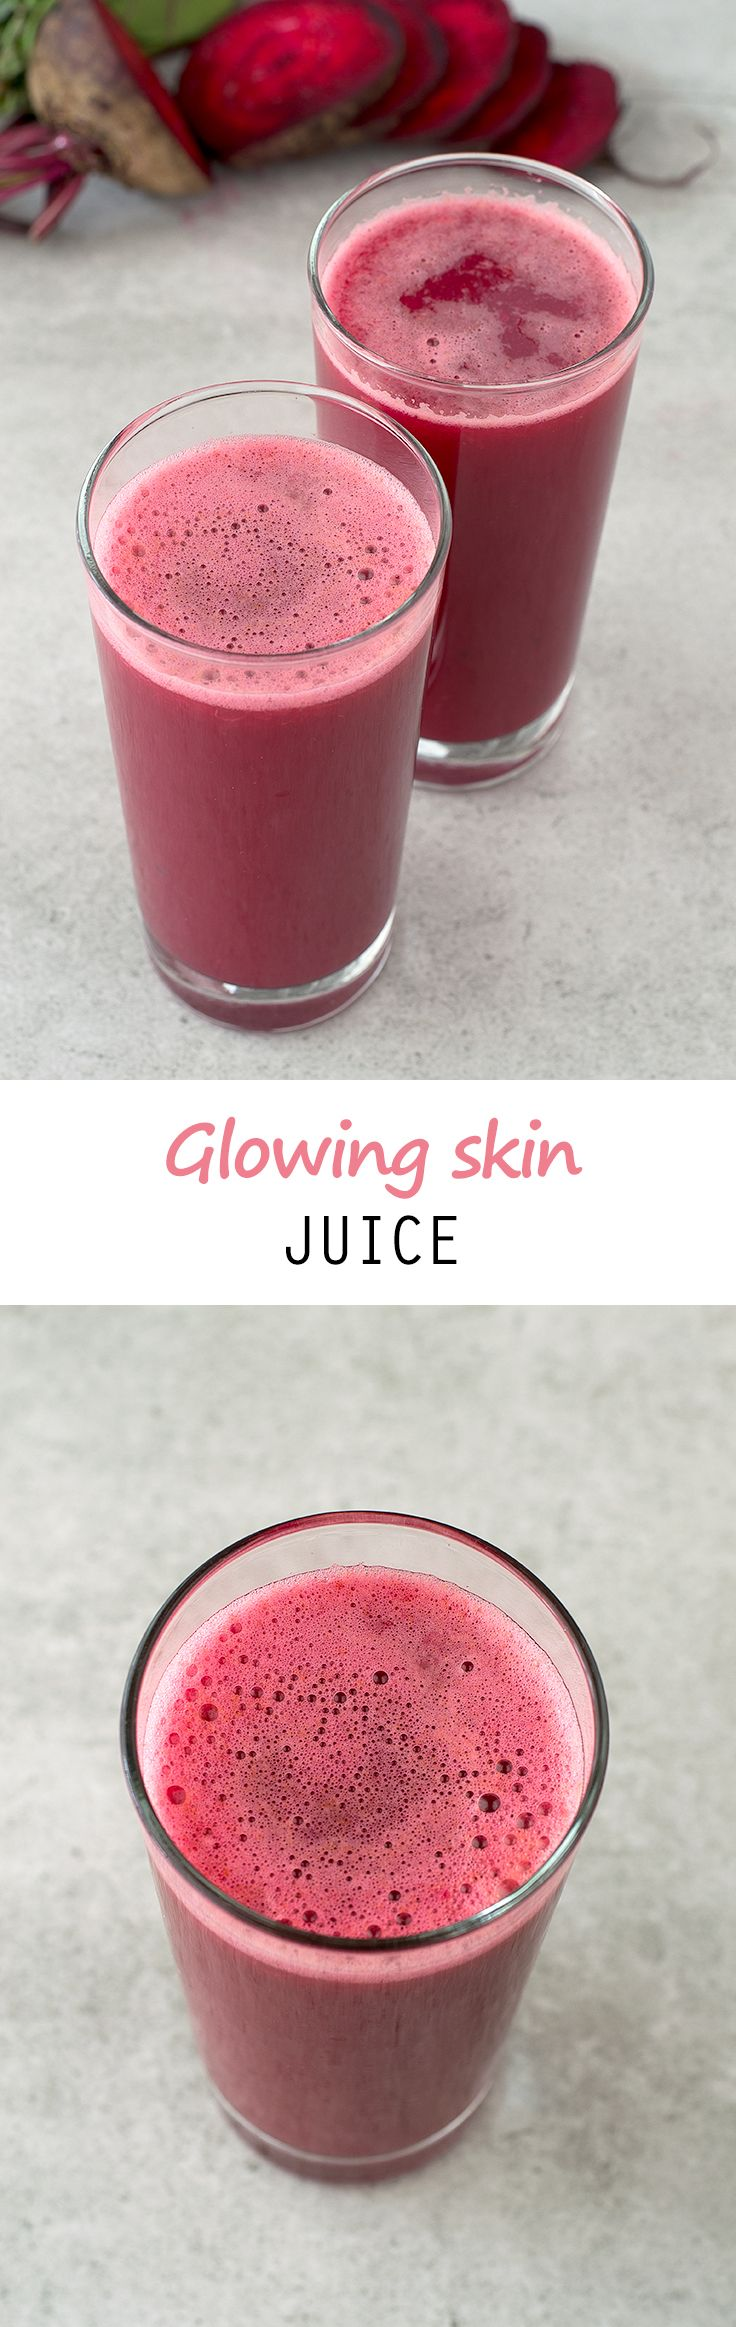 (Vegan and GF) Glowing Skin Juice | #vegan #glutenfree